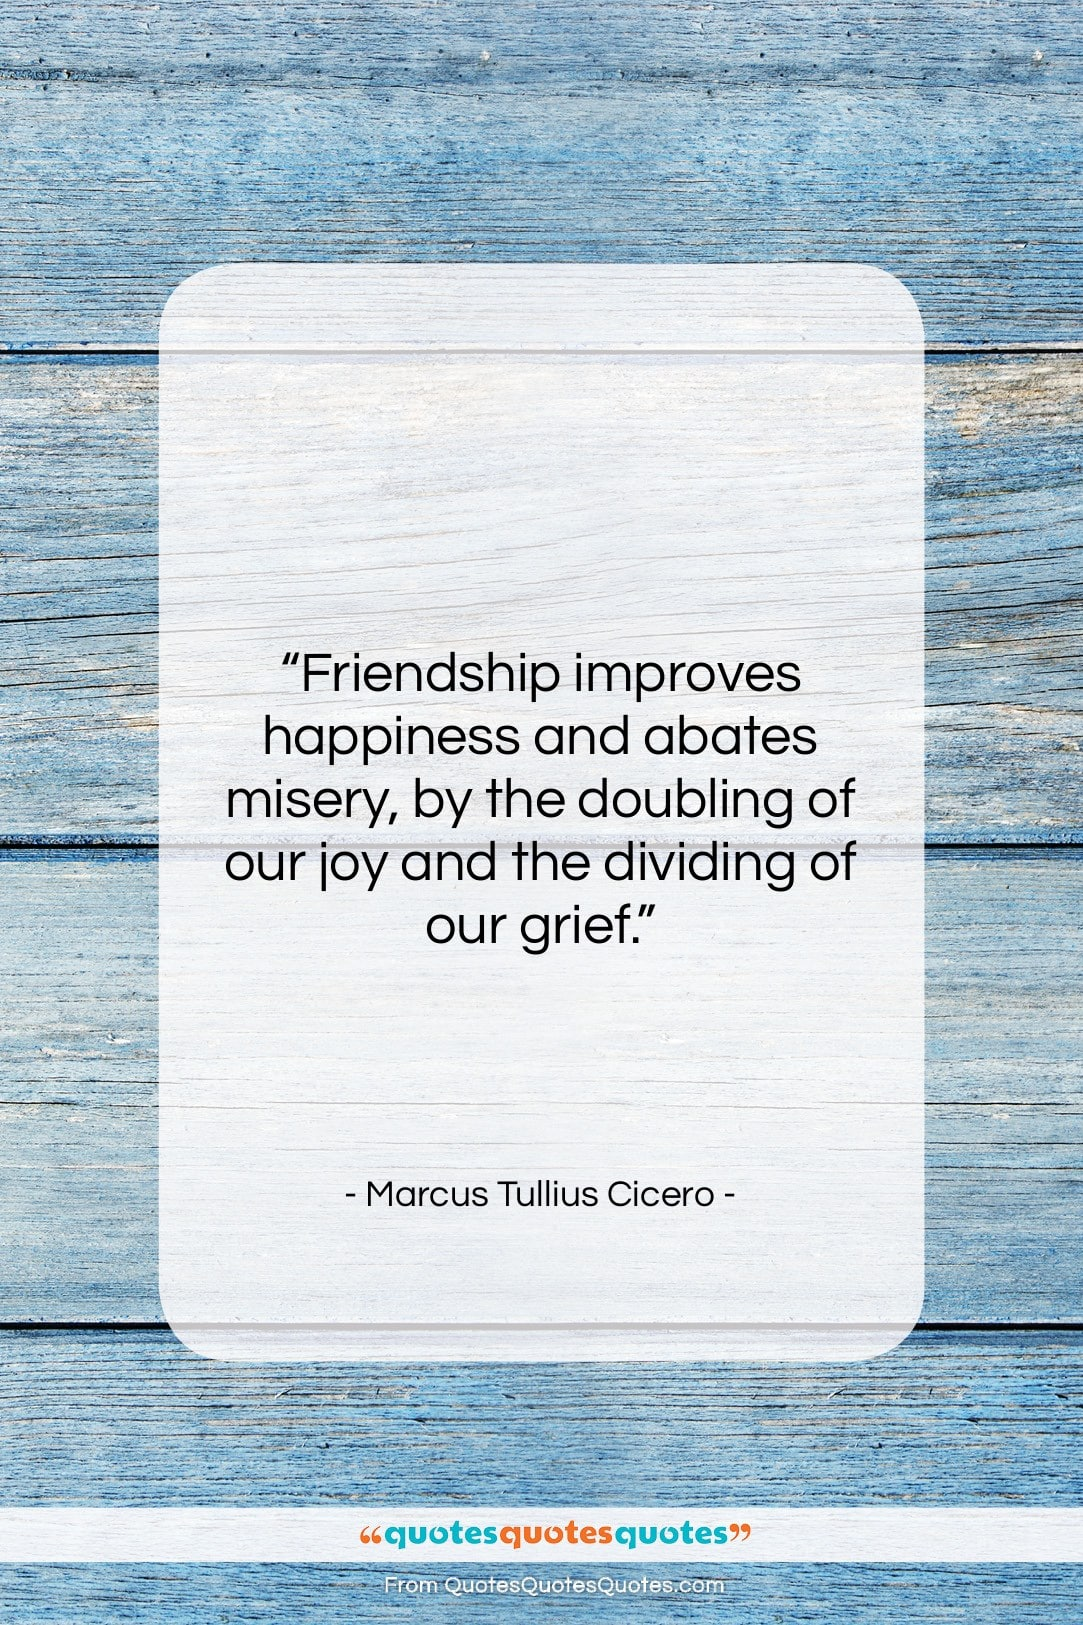 """Marcus Tullius Cicero quote: """"Friendship improves happiness and abates misery, by…""""- at QuotesQuotesQuotes.com"""